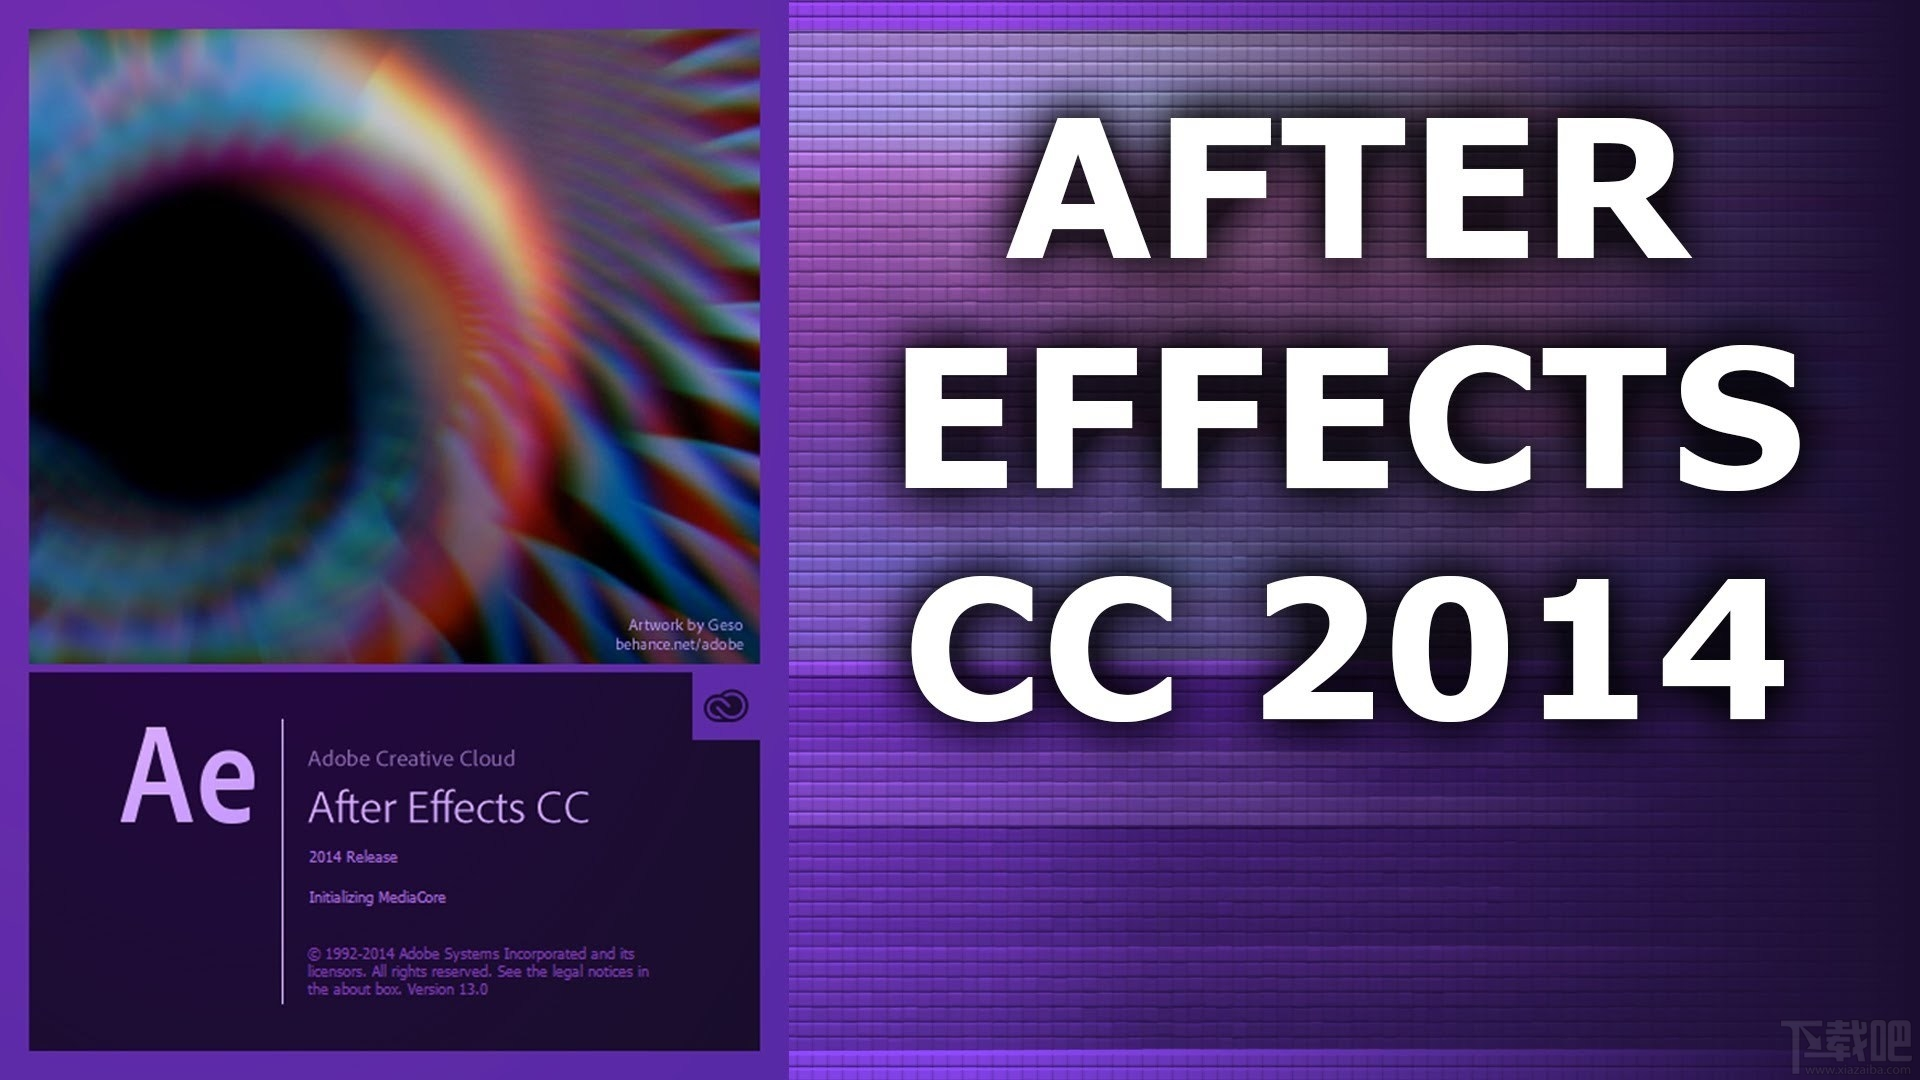 Adobe After Effects CC 2014(3)